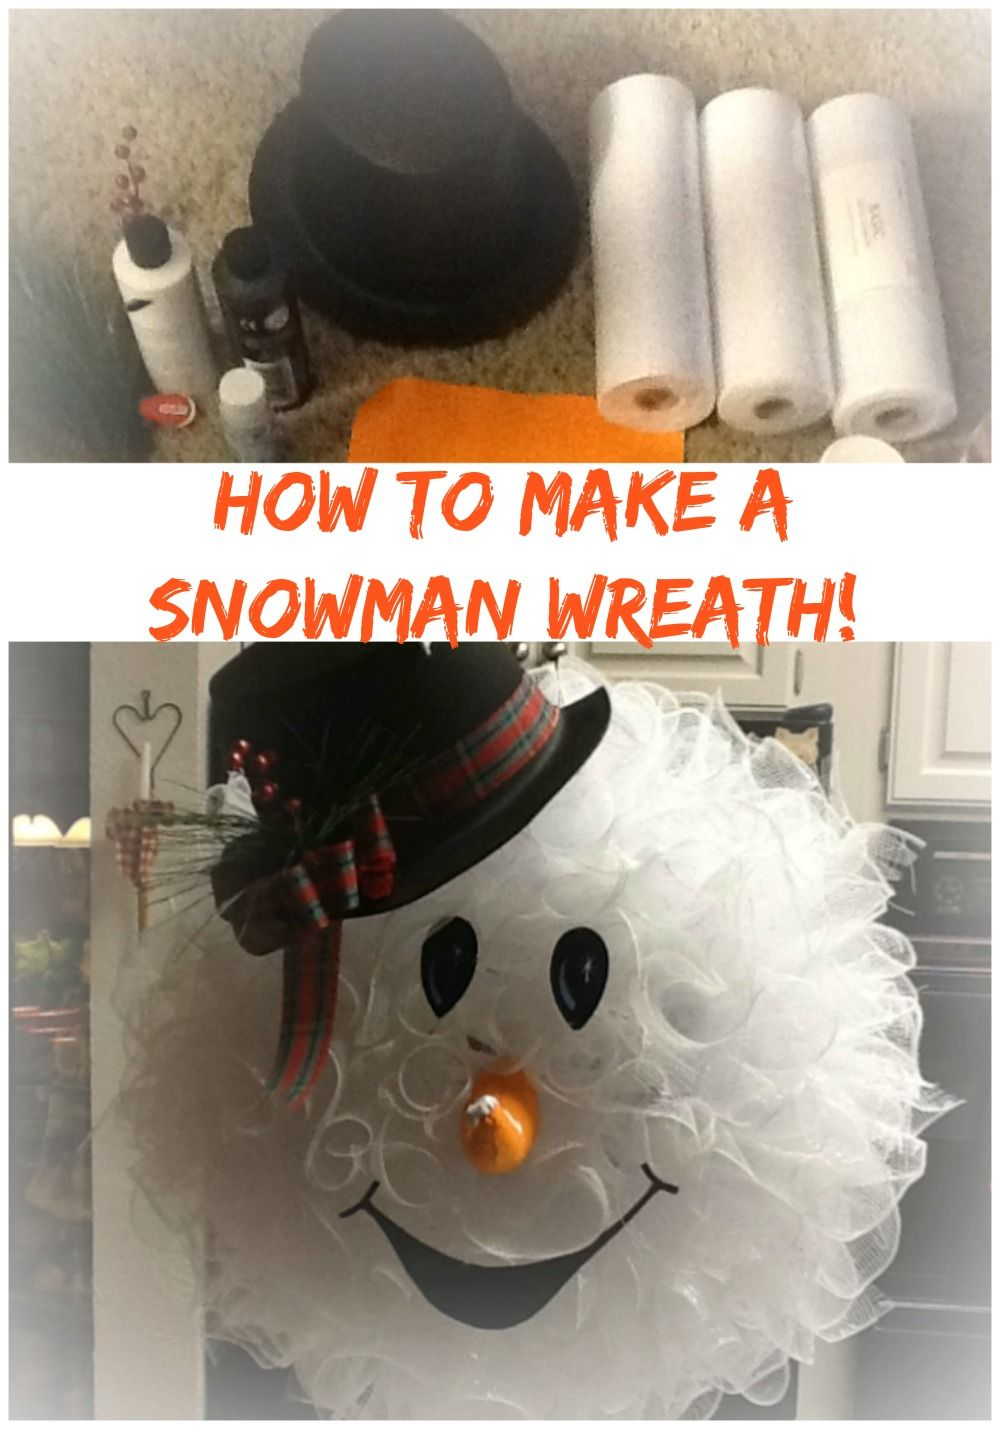 How To Make A Snowman Wreath By Peggy Bond Snowman Wreath